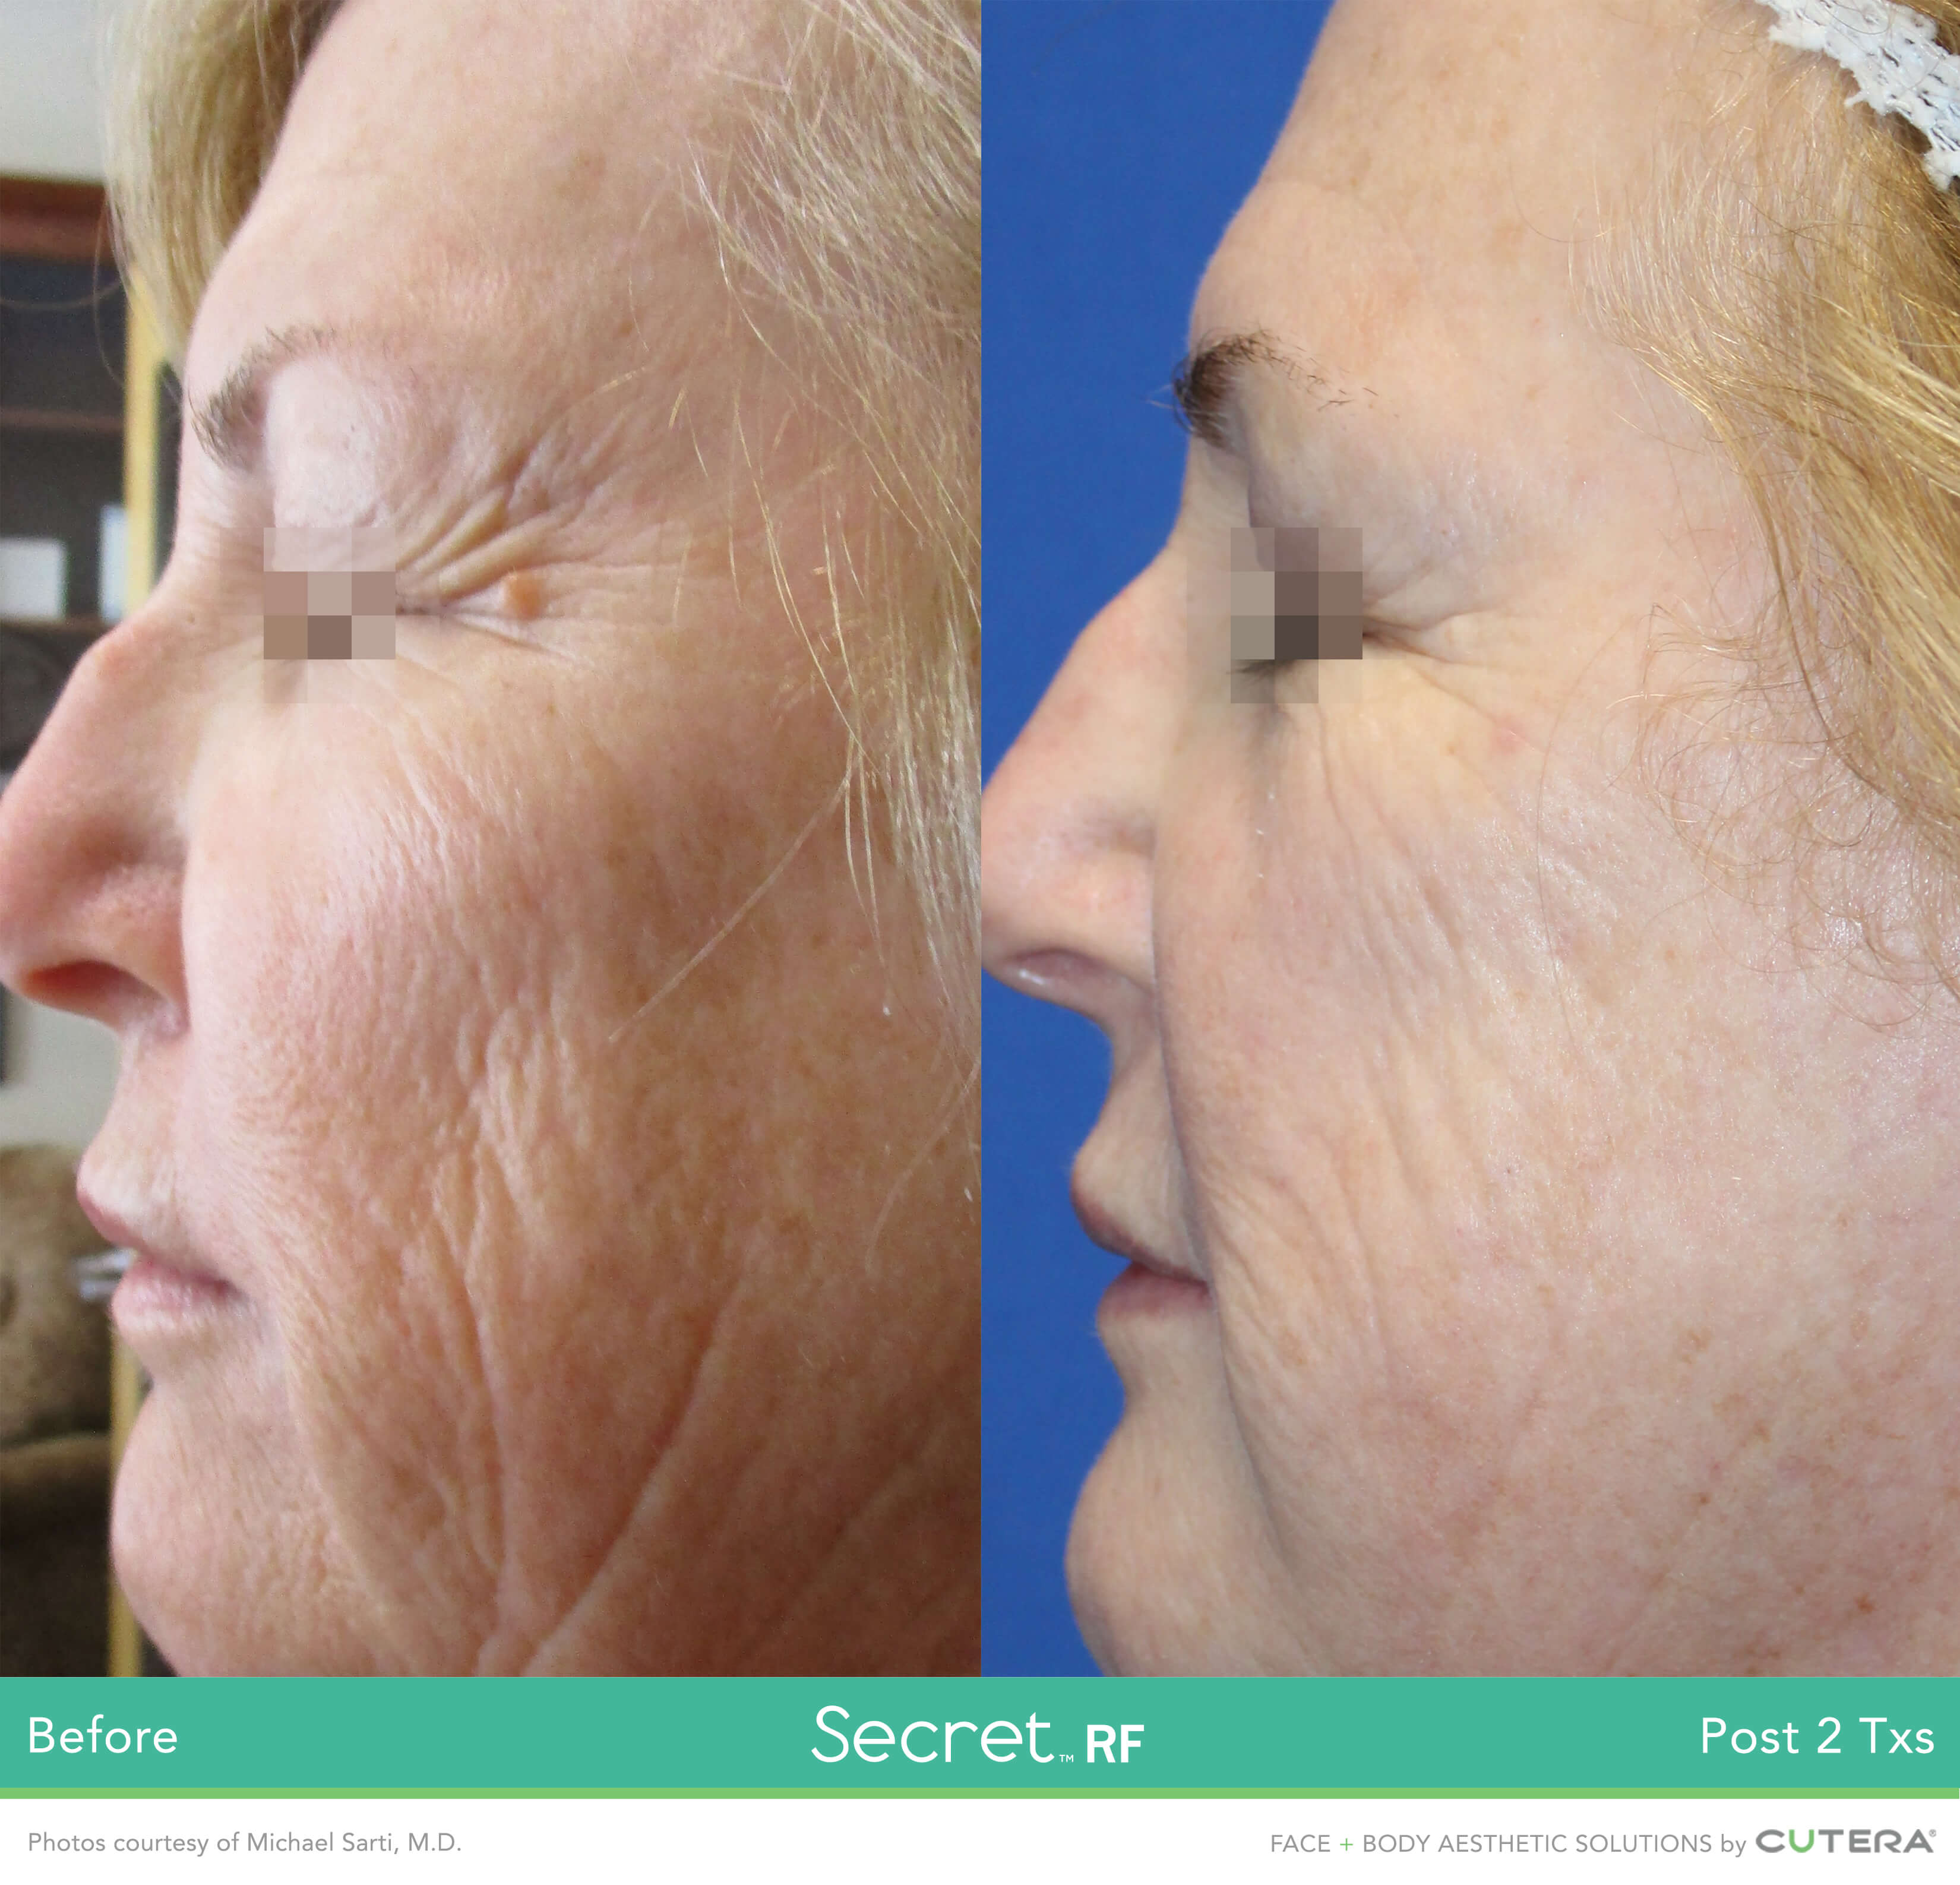 Skin resurfacing treatment Before and After of wrinkles on the cheeks being removed in 2 sessions.